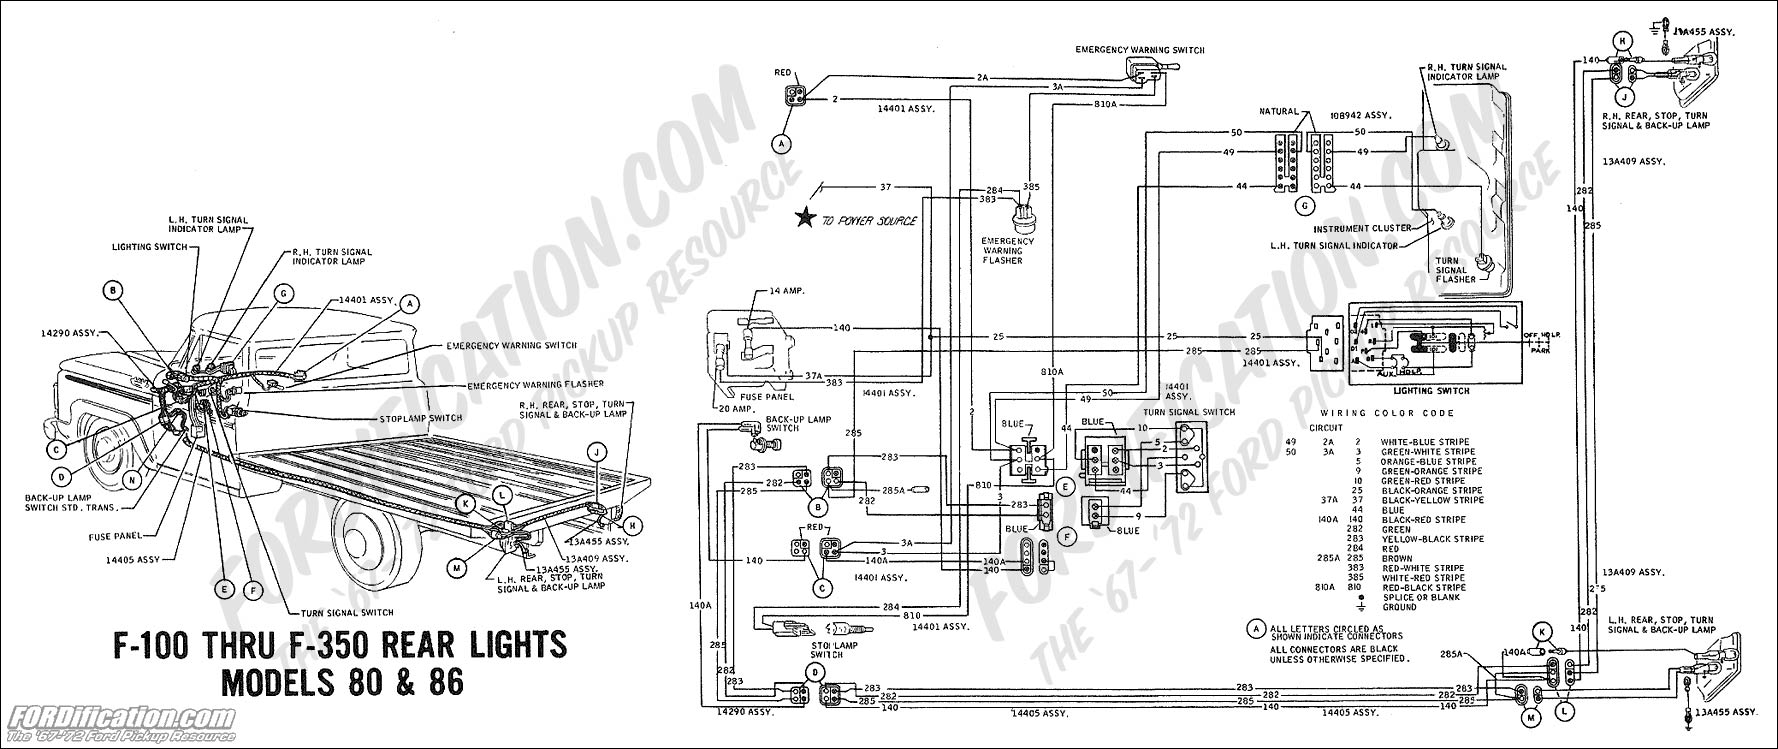 hight resolution of 69 ford f350 wiring diagram wiring schematic diagram 17 peg 1980 f100 wiring diagram